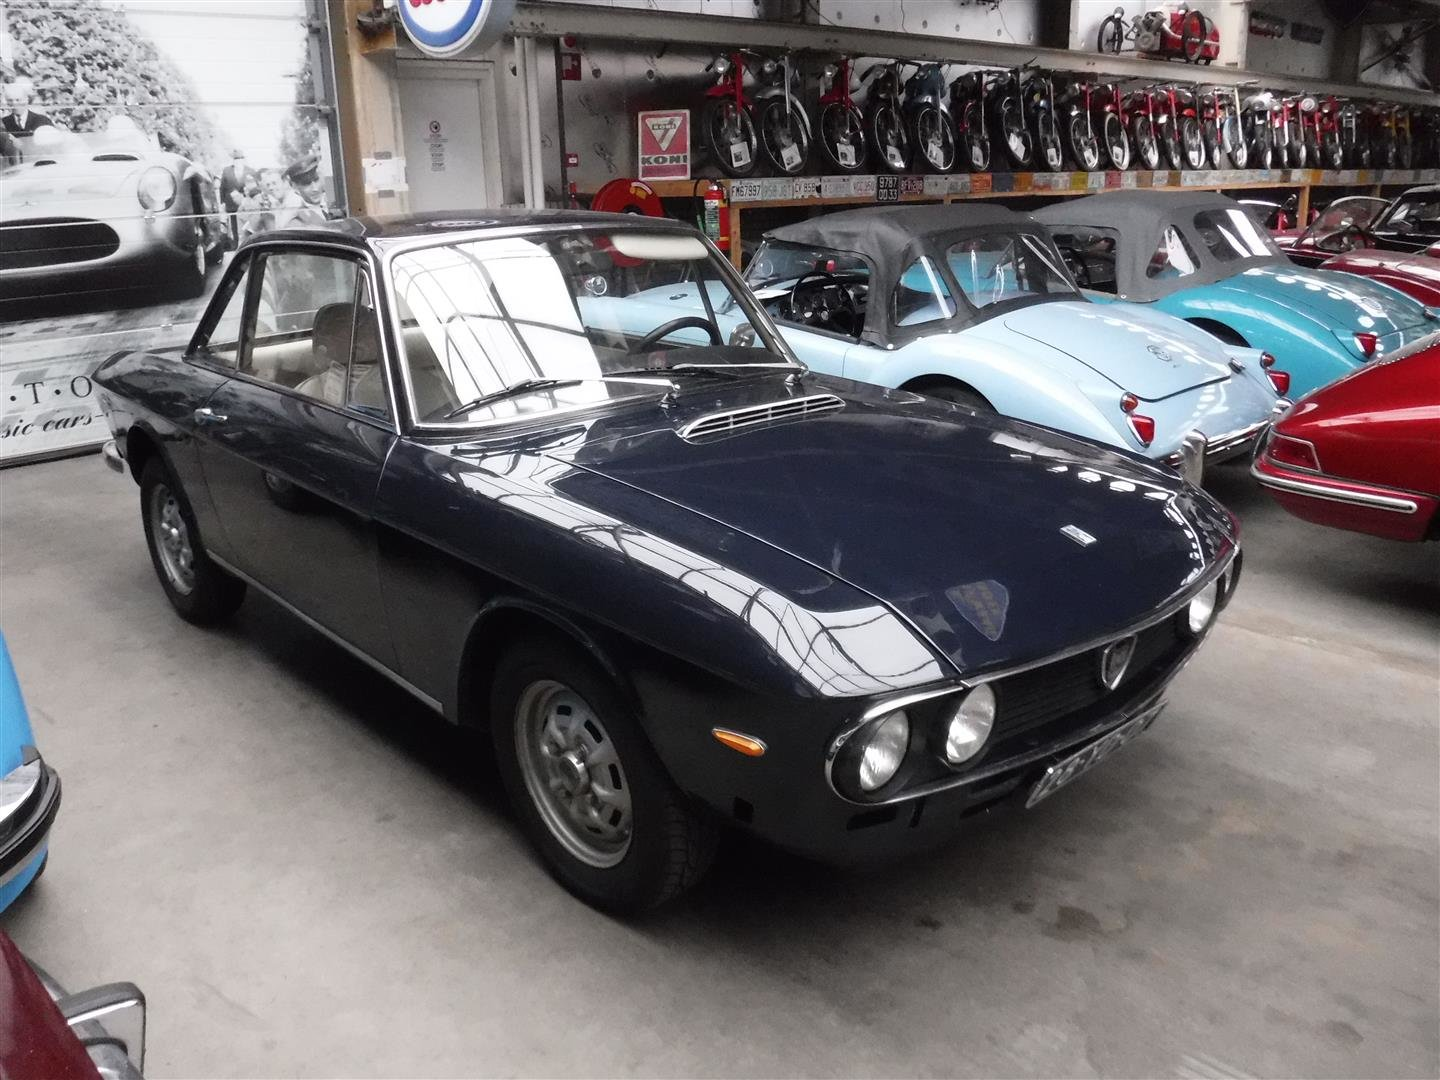 1974 Very nice Lancia Fulvia 1.3 S '74 For Sale (picture 1 of 6)